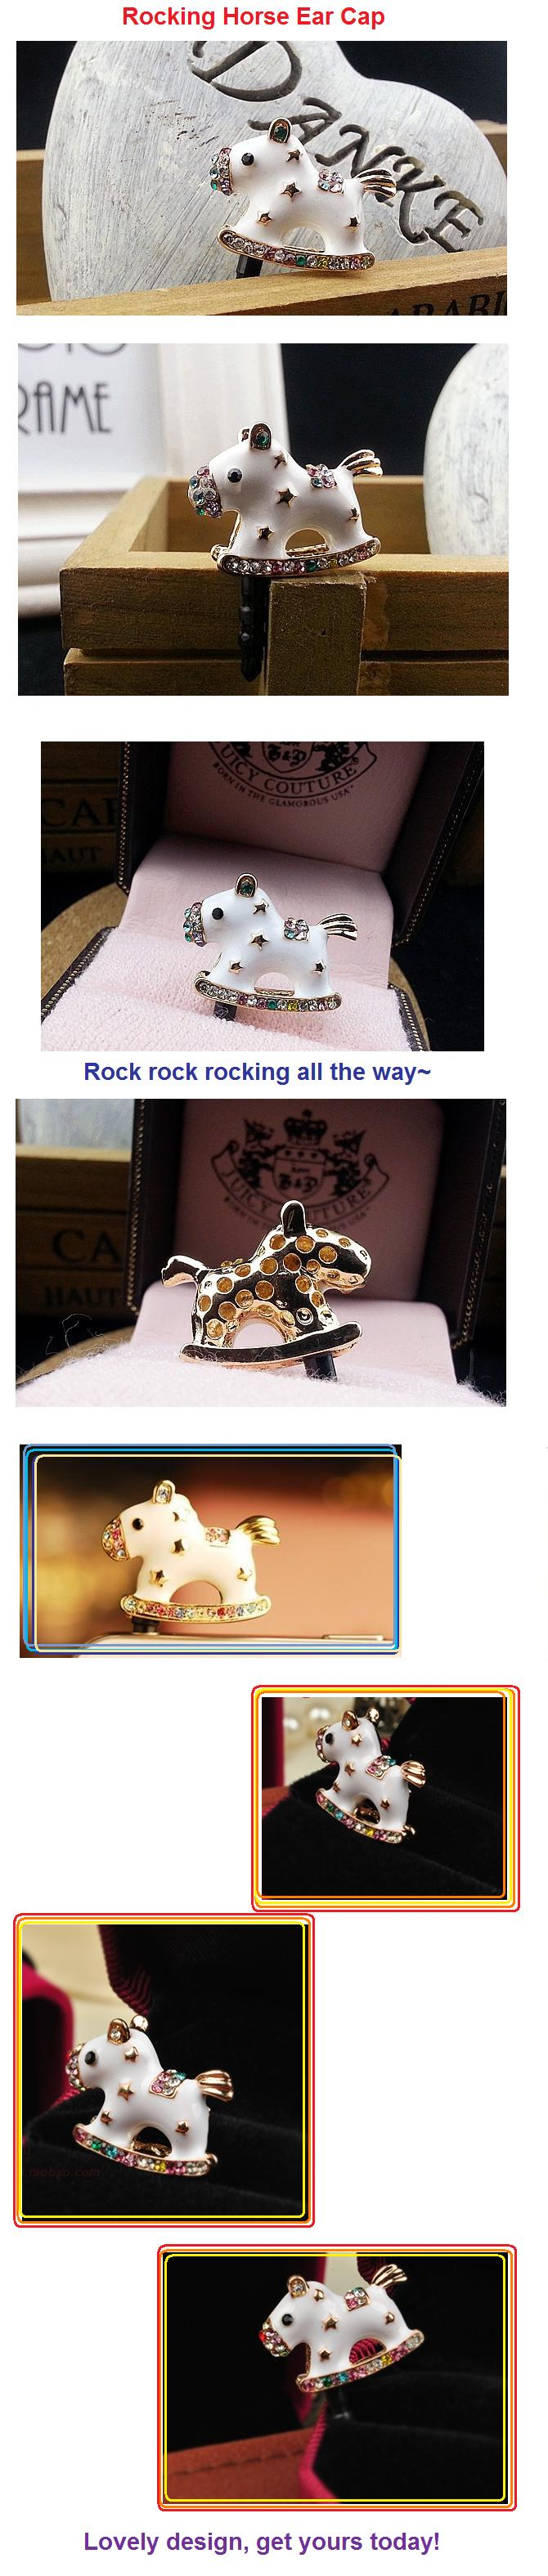 how to make rocking horse ears